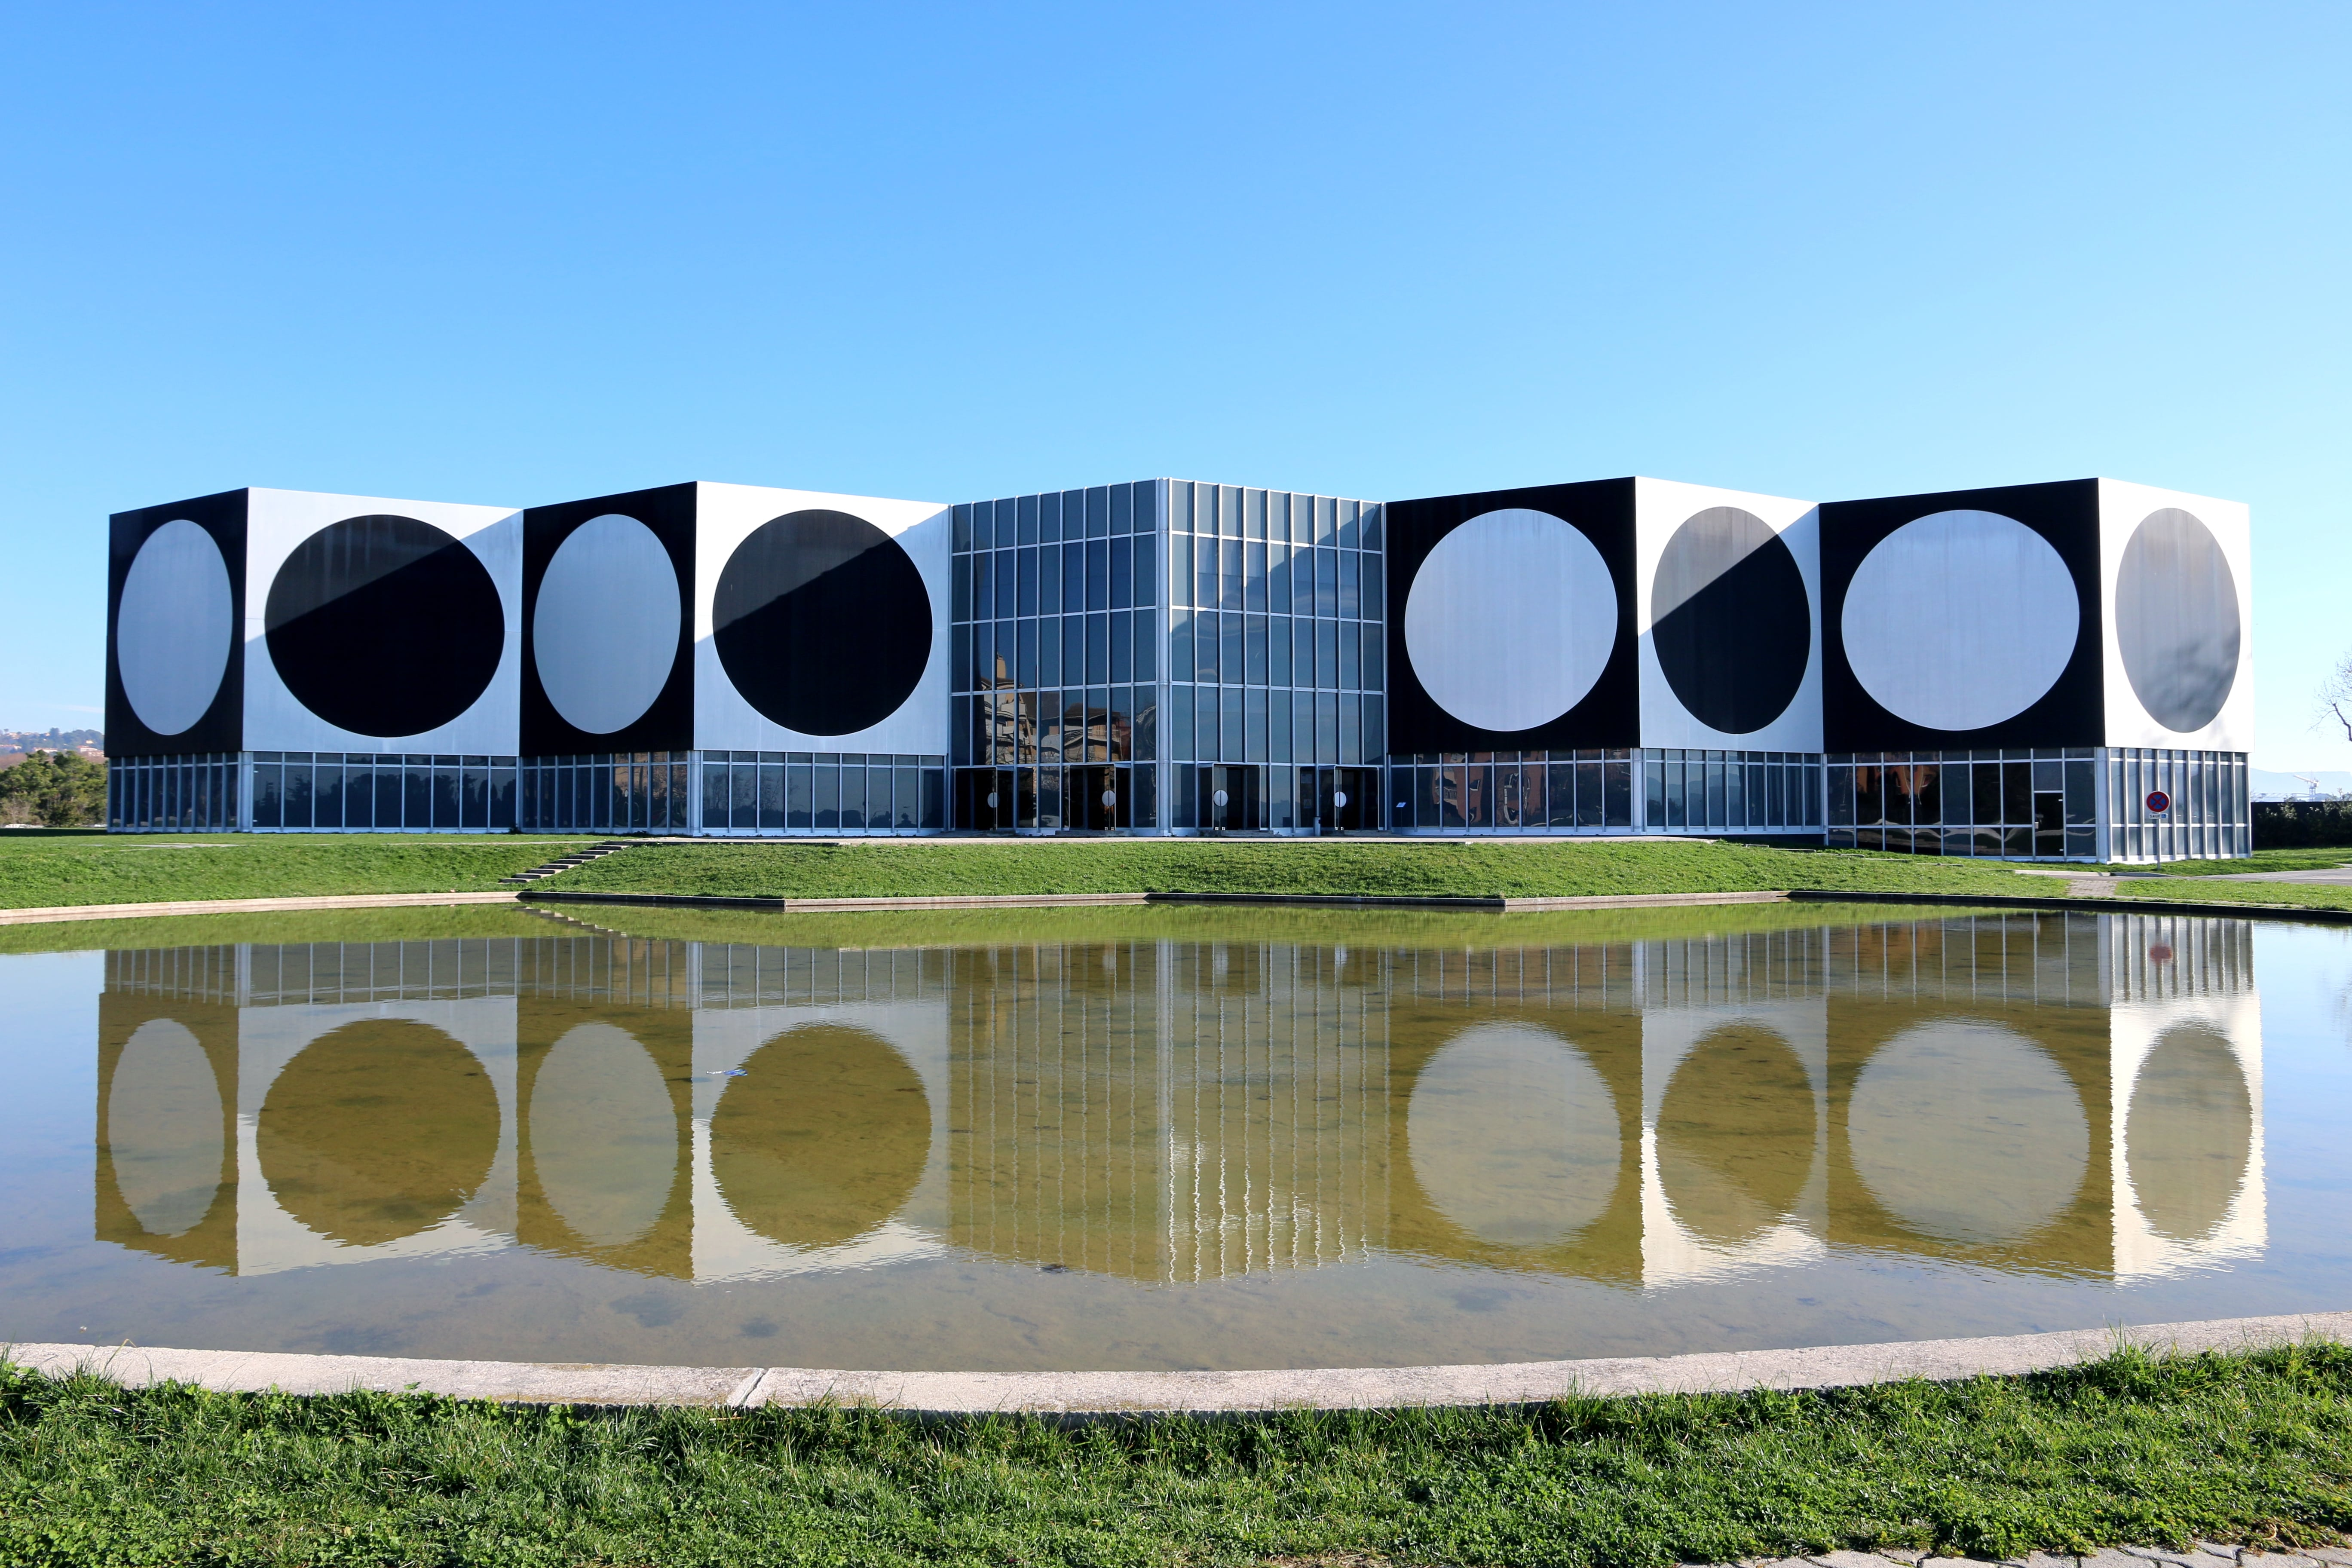 The building of the Vasarely Fondation